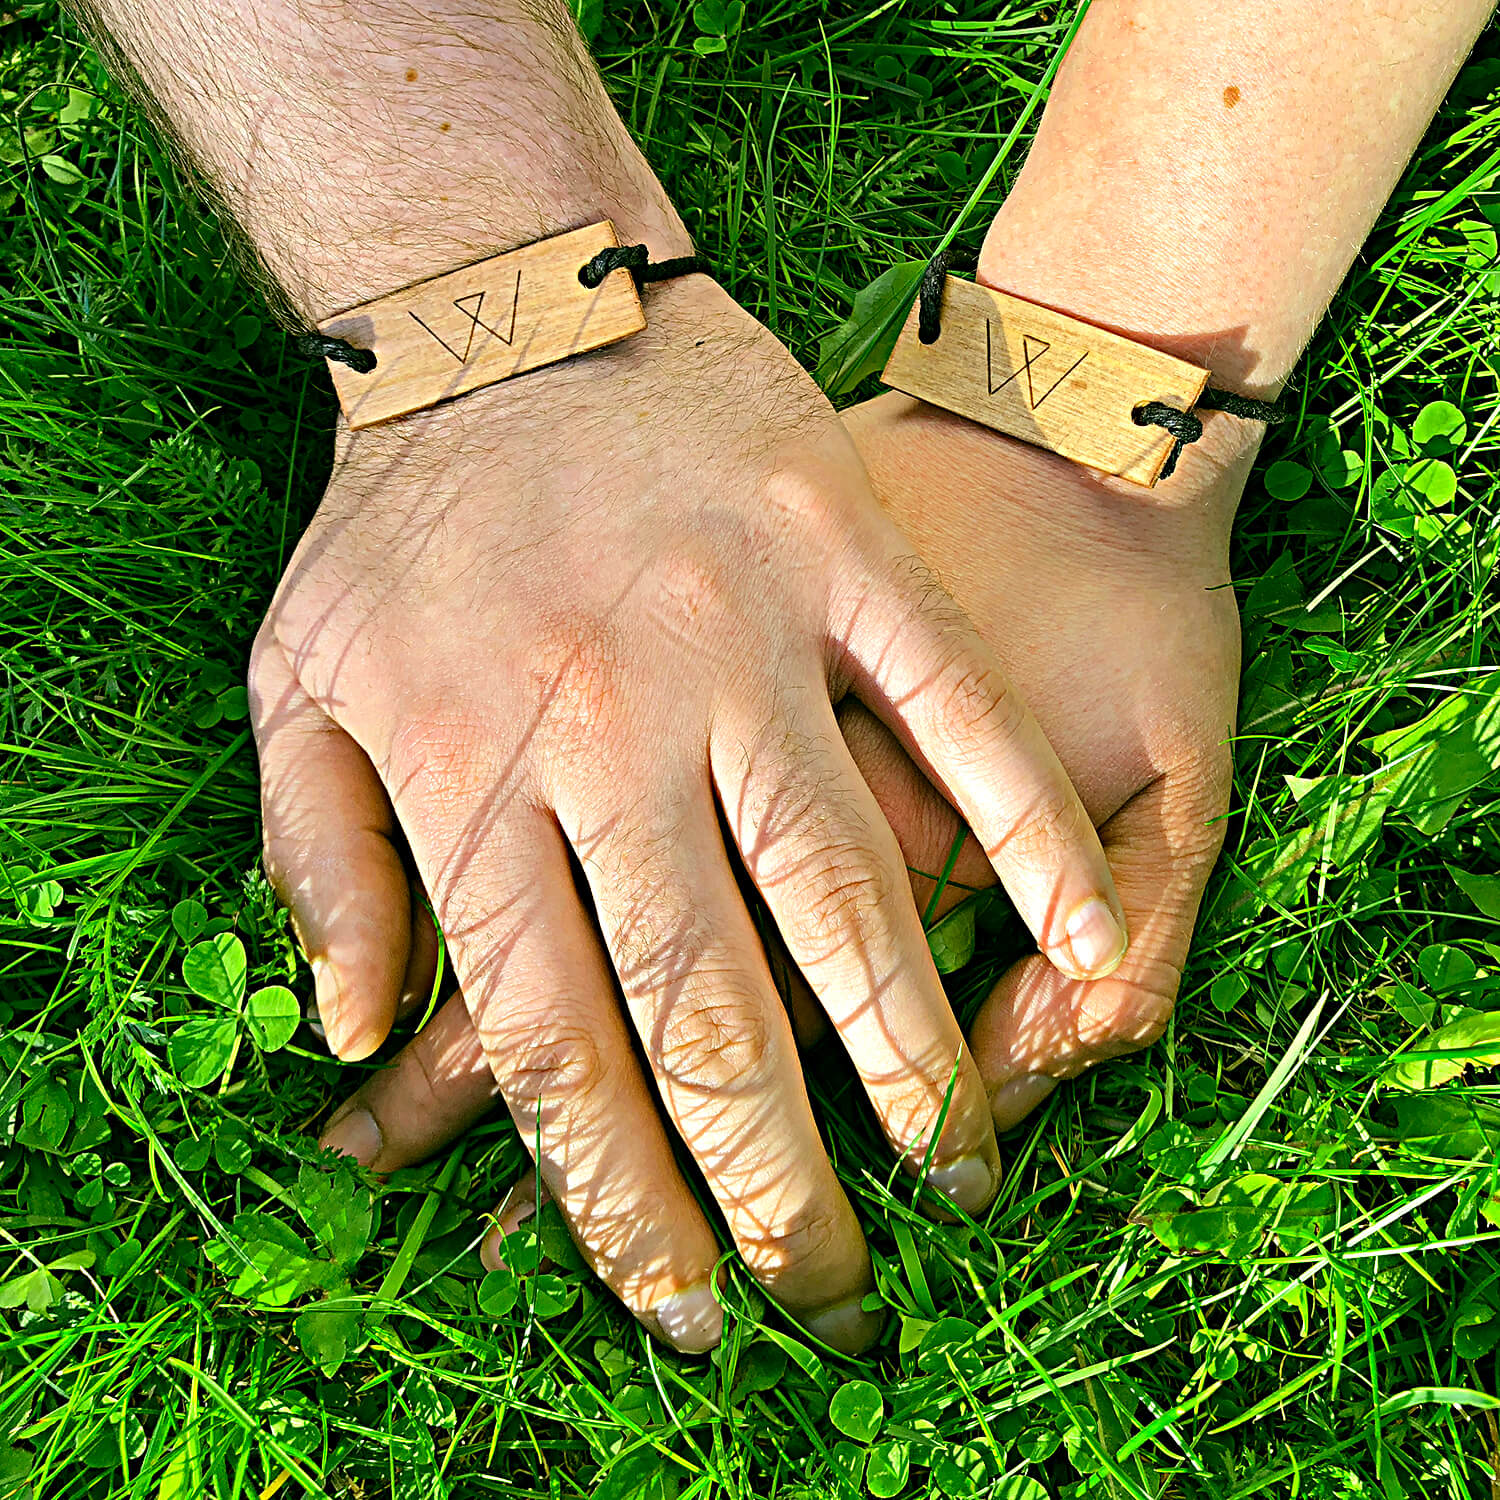 Protect 10 Square Feet of Forest + Get a Recycled Wooden Bracelet